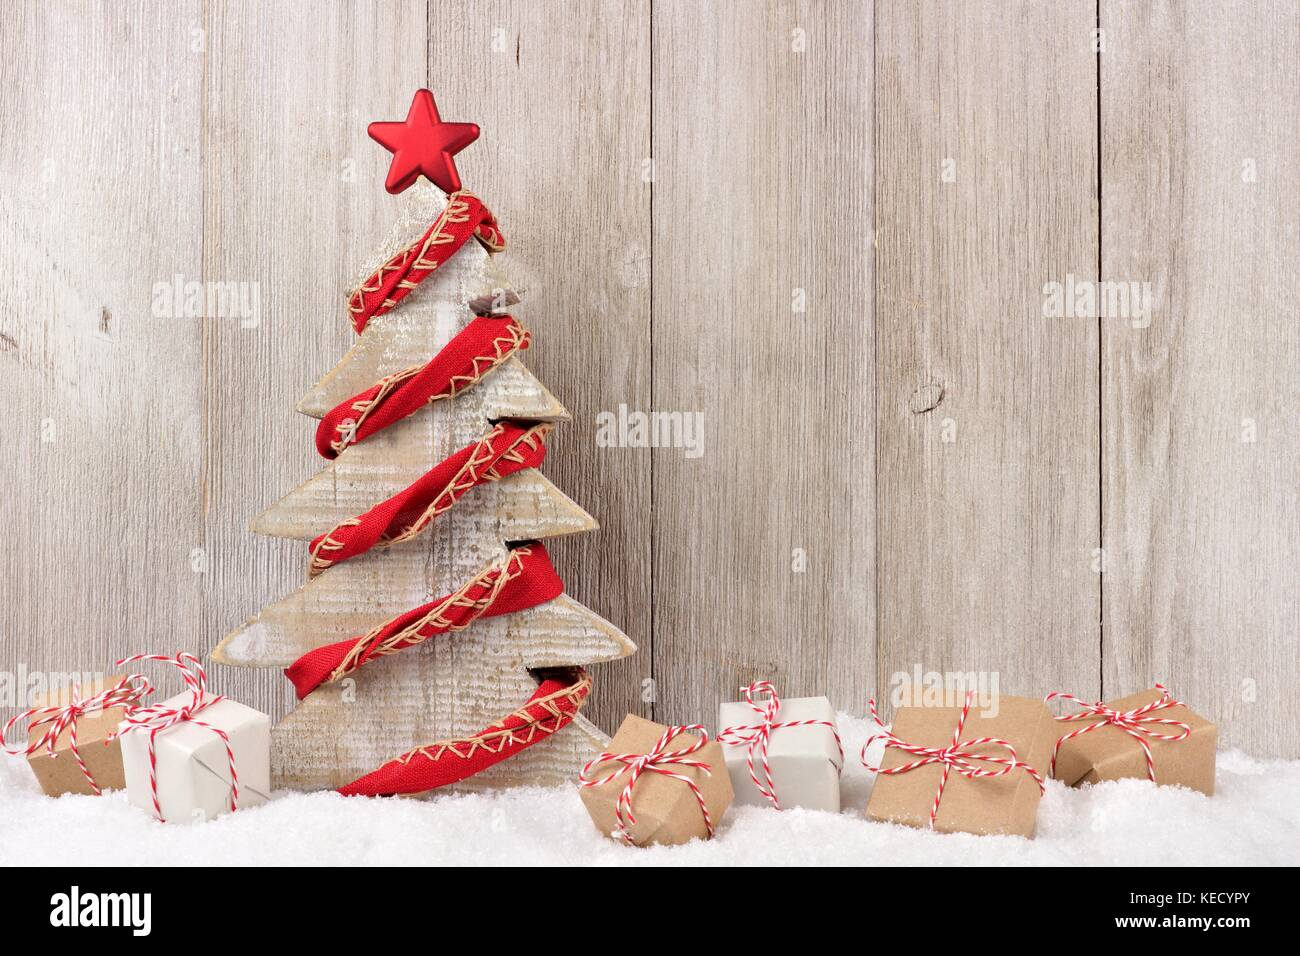 Shabby Chic Wooden Christmas Tree With Rustic Red Garland And Gifts Stock Photo Alamy